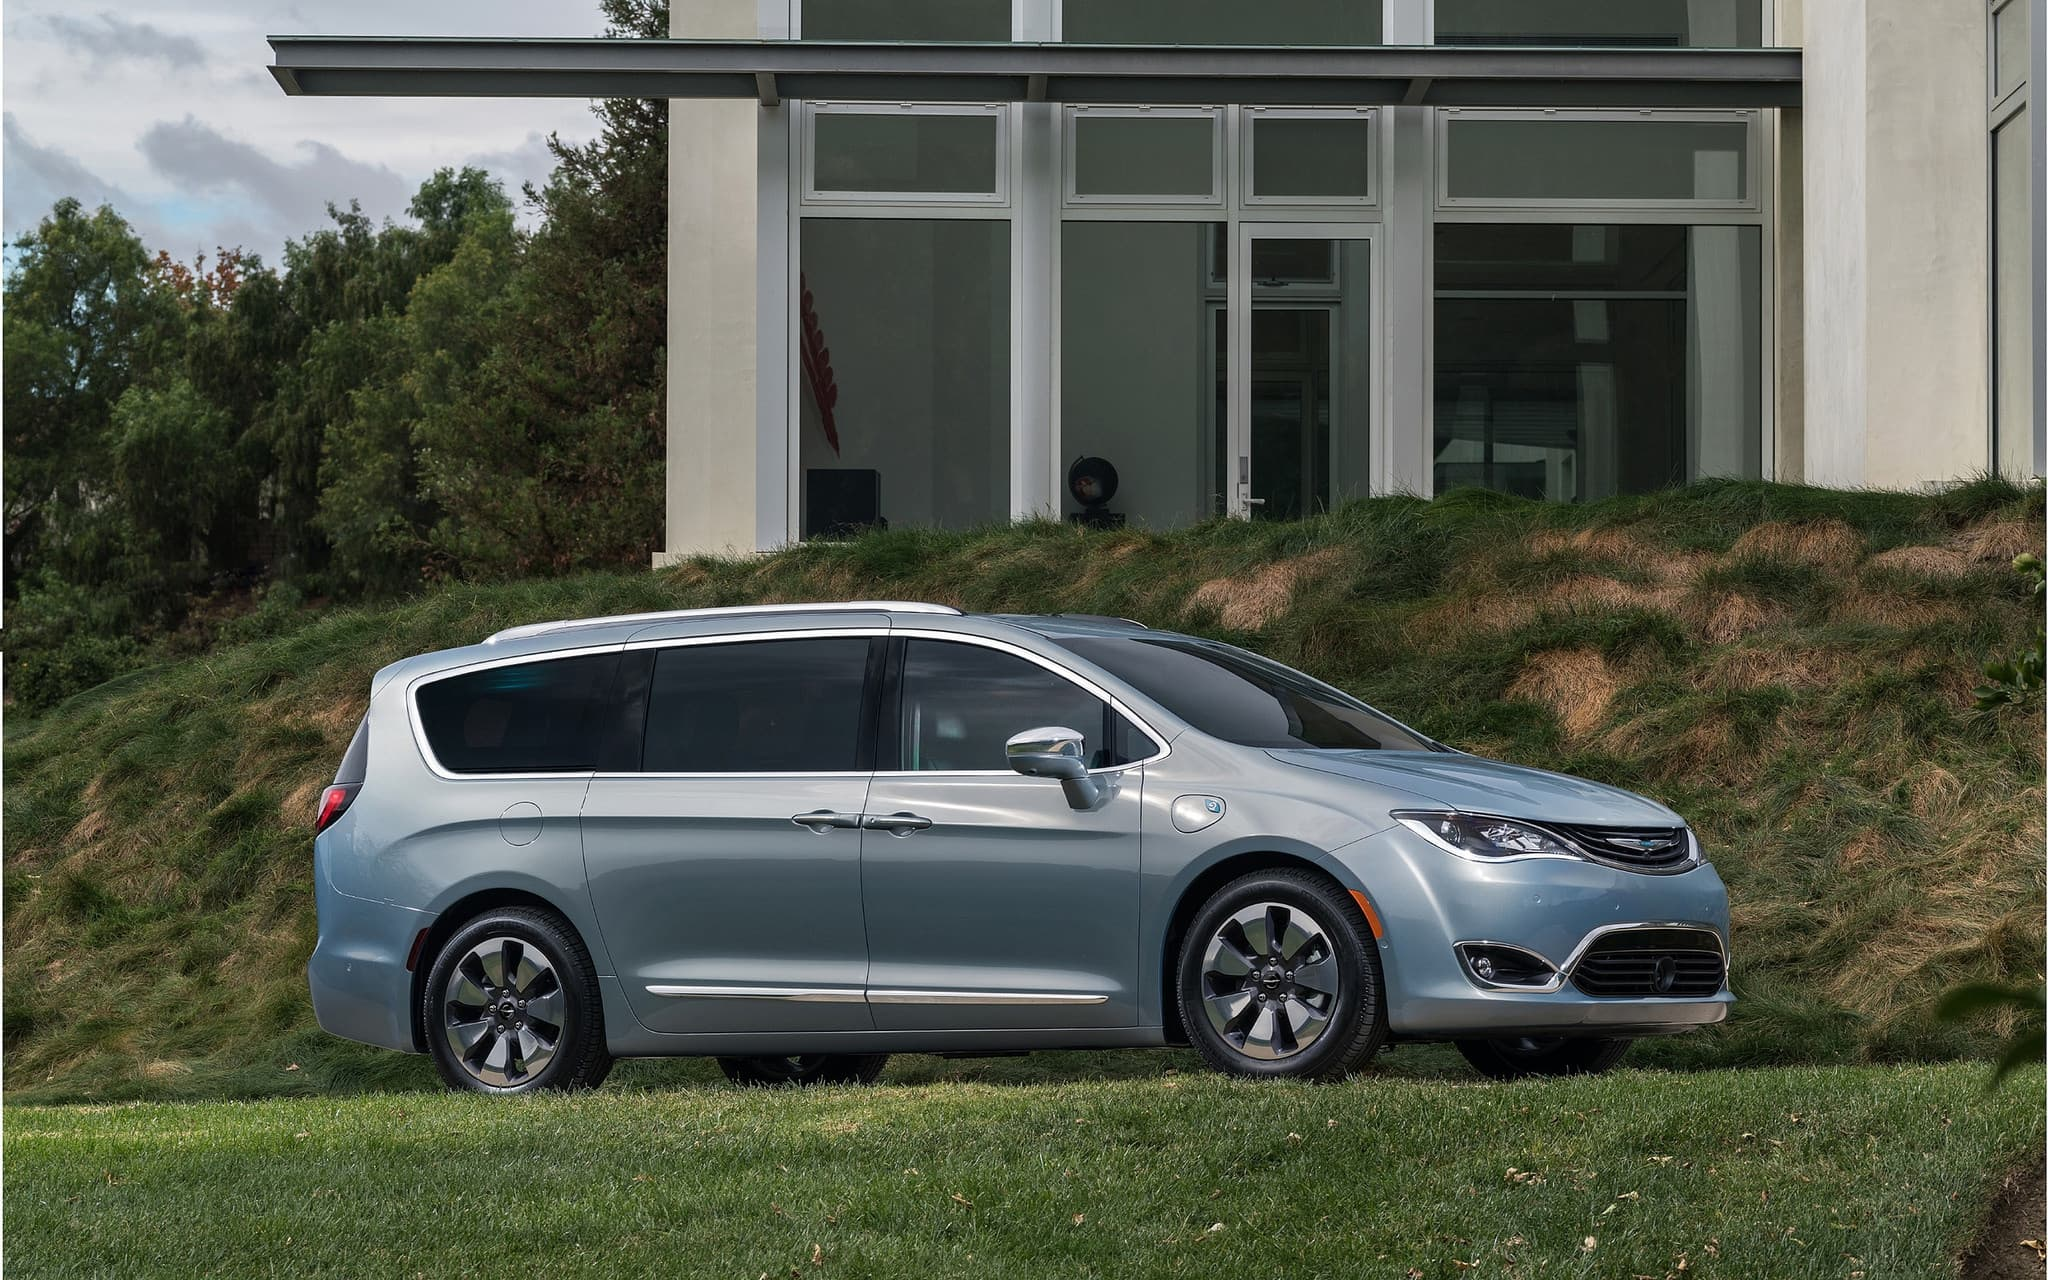 chrysler pacifica minivan 2016 wallpapers hd high quality. Black Bedroom Furniture Sets. Home Design Ideas